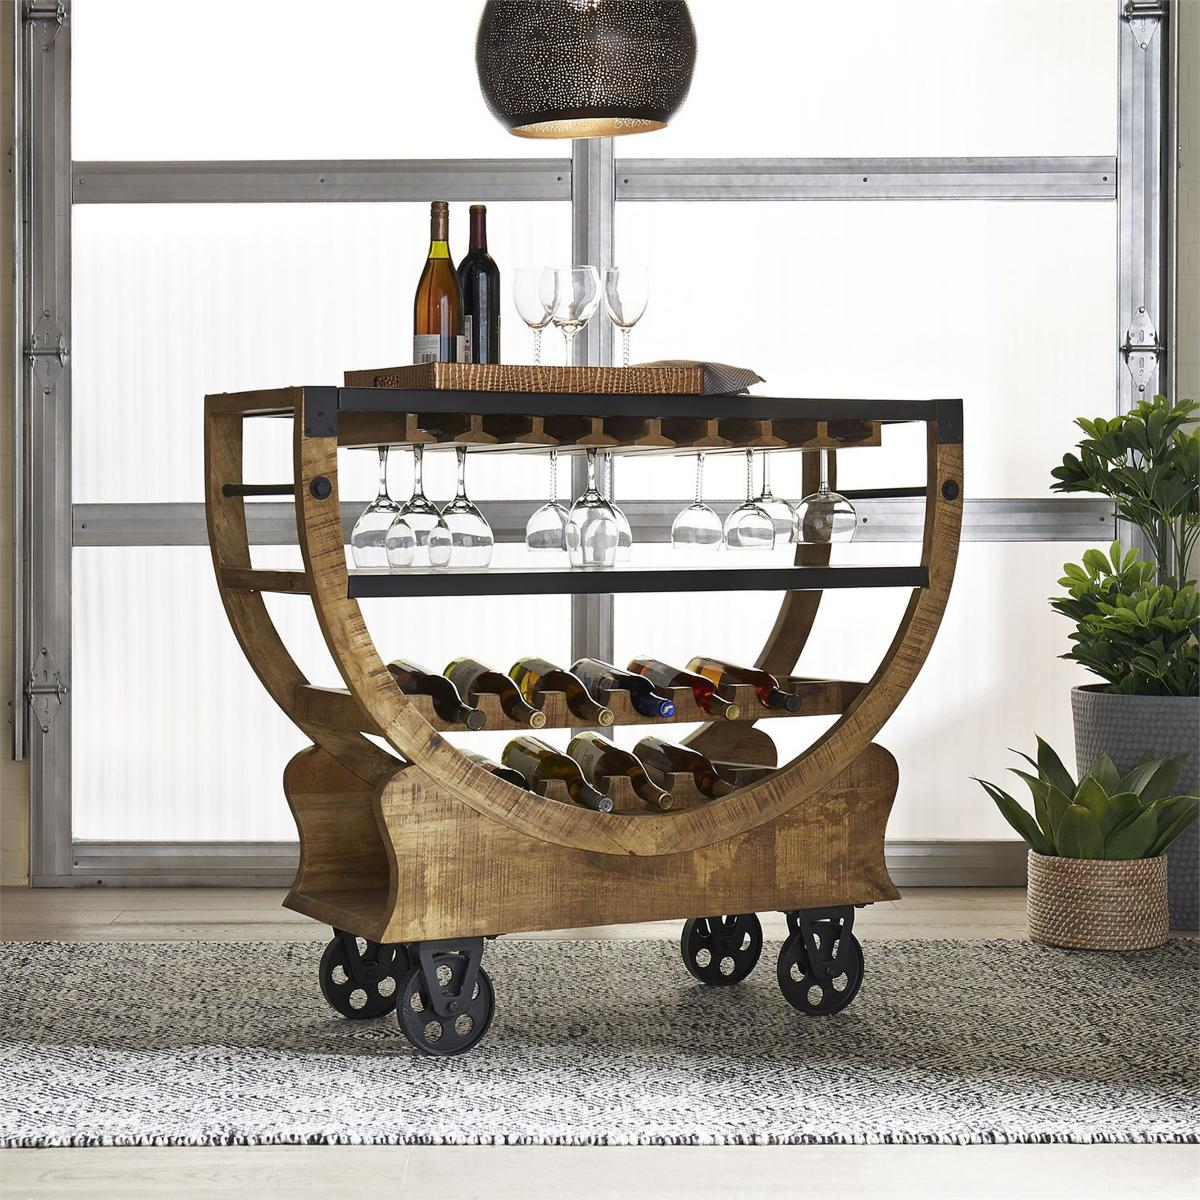 The 5 Best Bar Carts & Cabinets Perfect for Entertaining Summer Guests